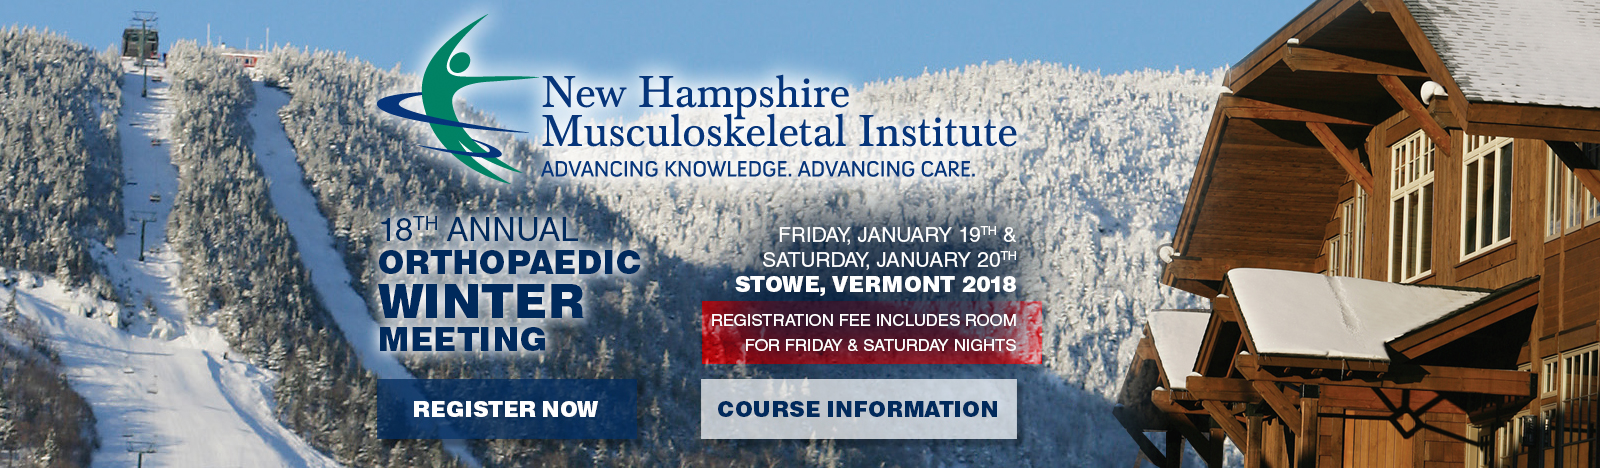 New Hampshire Musculoskeletal Institute